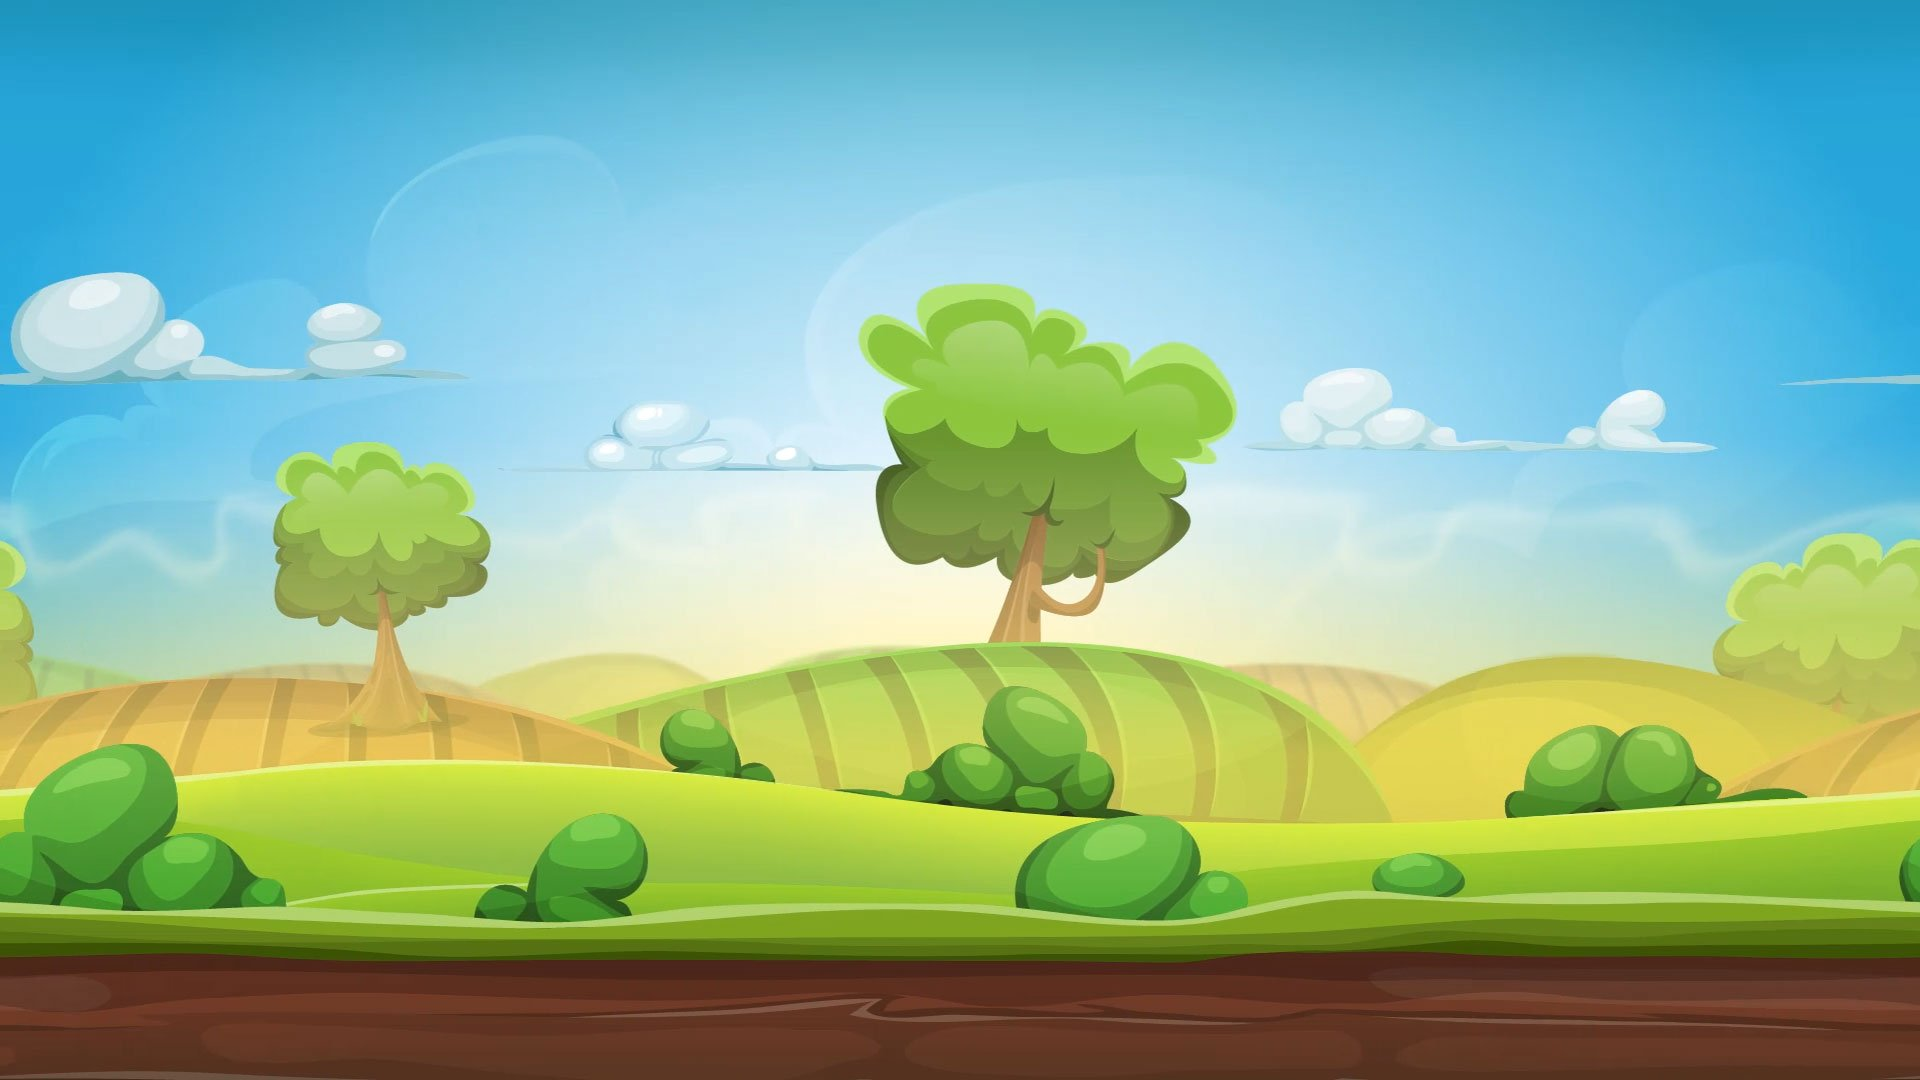 Cartoon Country Landscape Animation Loop Free Hd Video Clips Stock Video Footage At Videezy Cartoon low poly landscape scene. cartoon country landscape animation loop